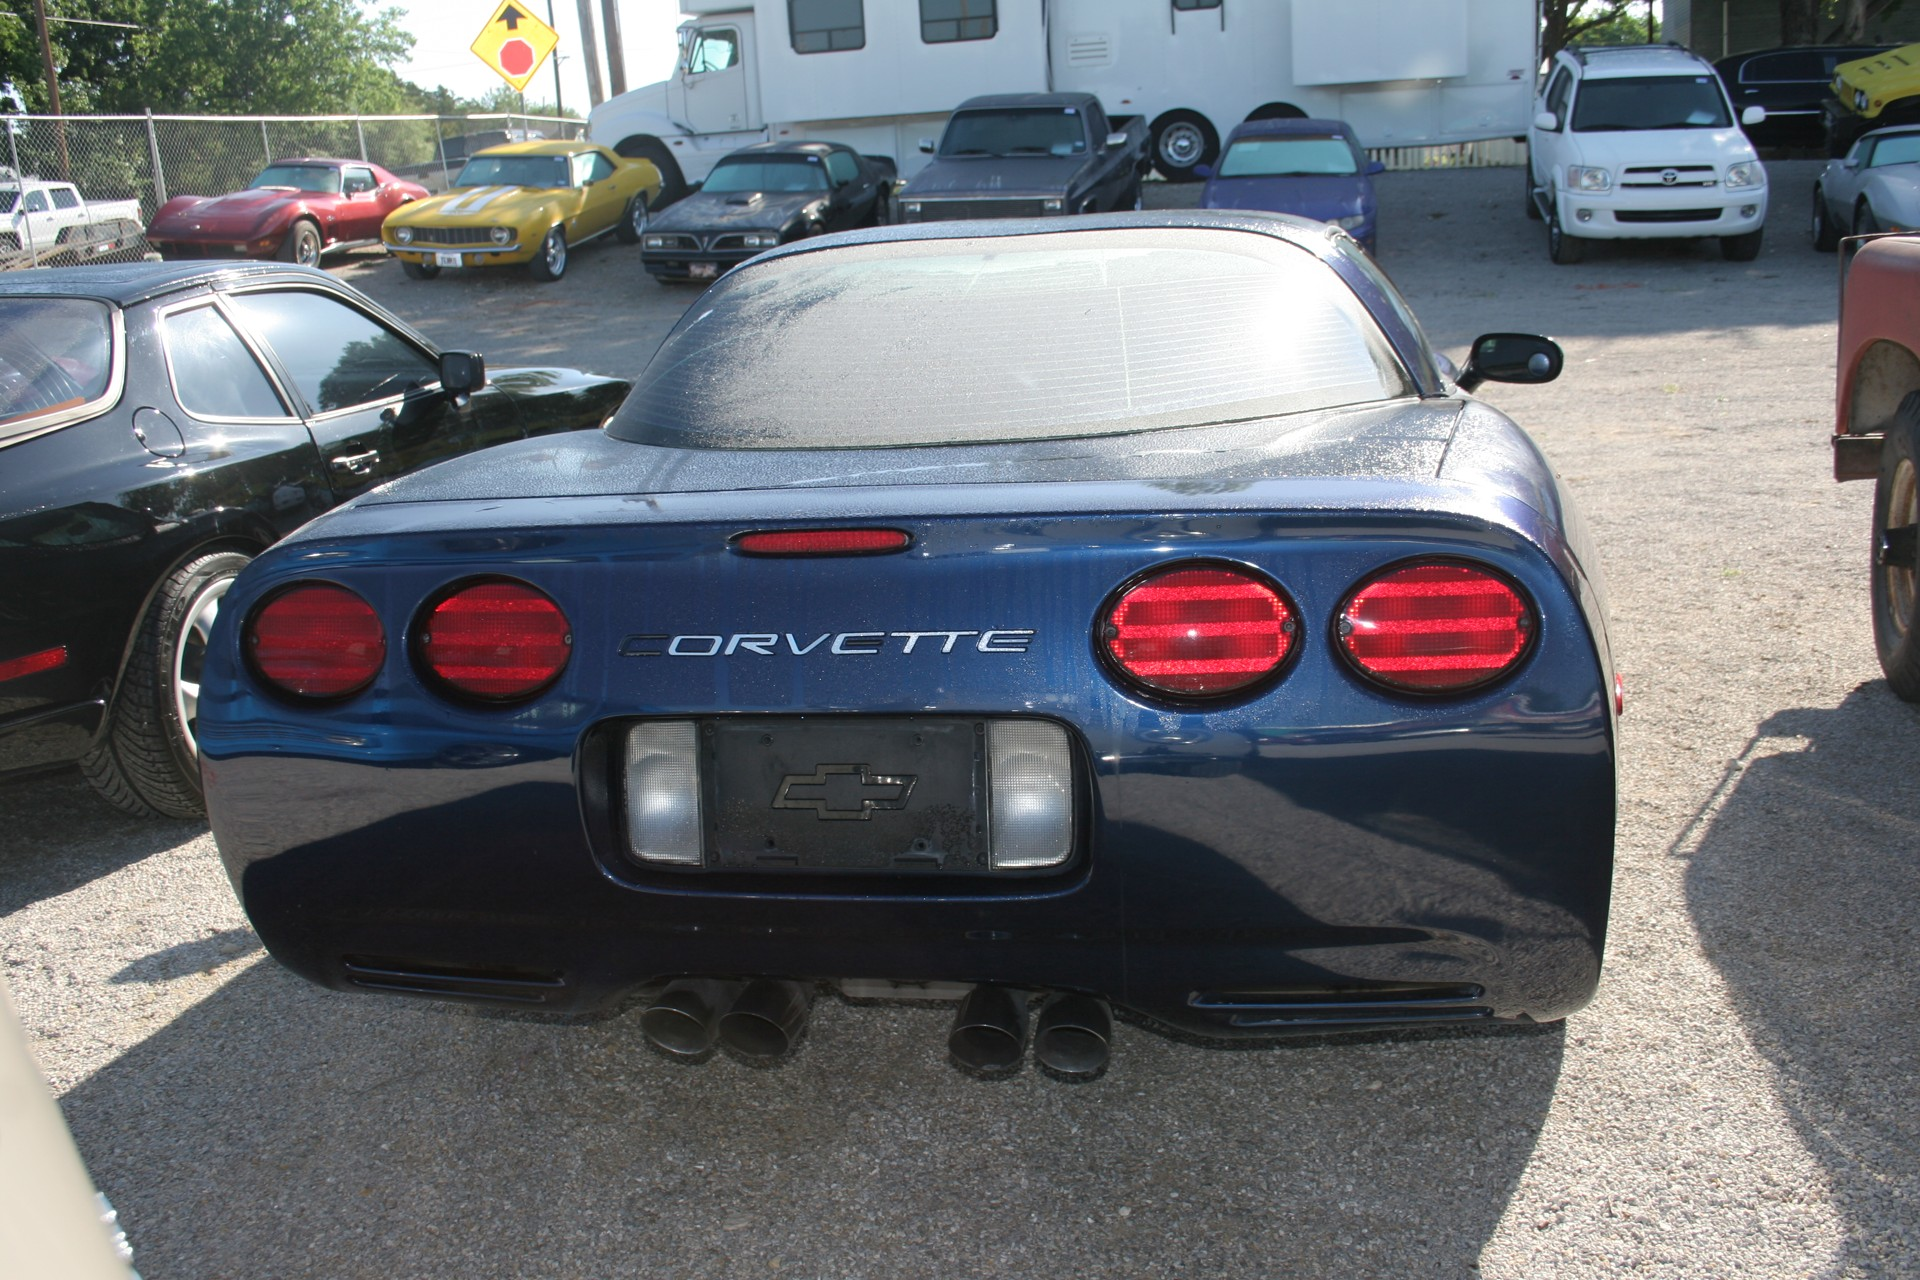 4th Image of a 2001 CHEVROLET CORVETTE